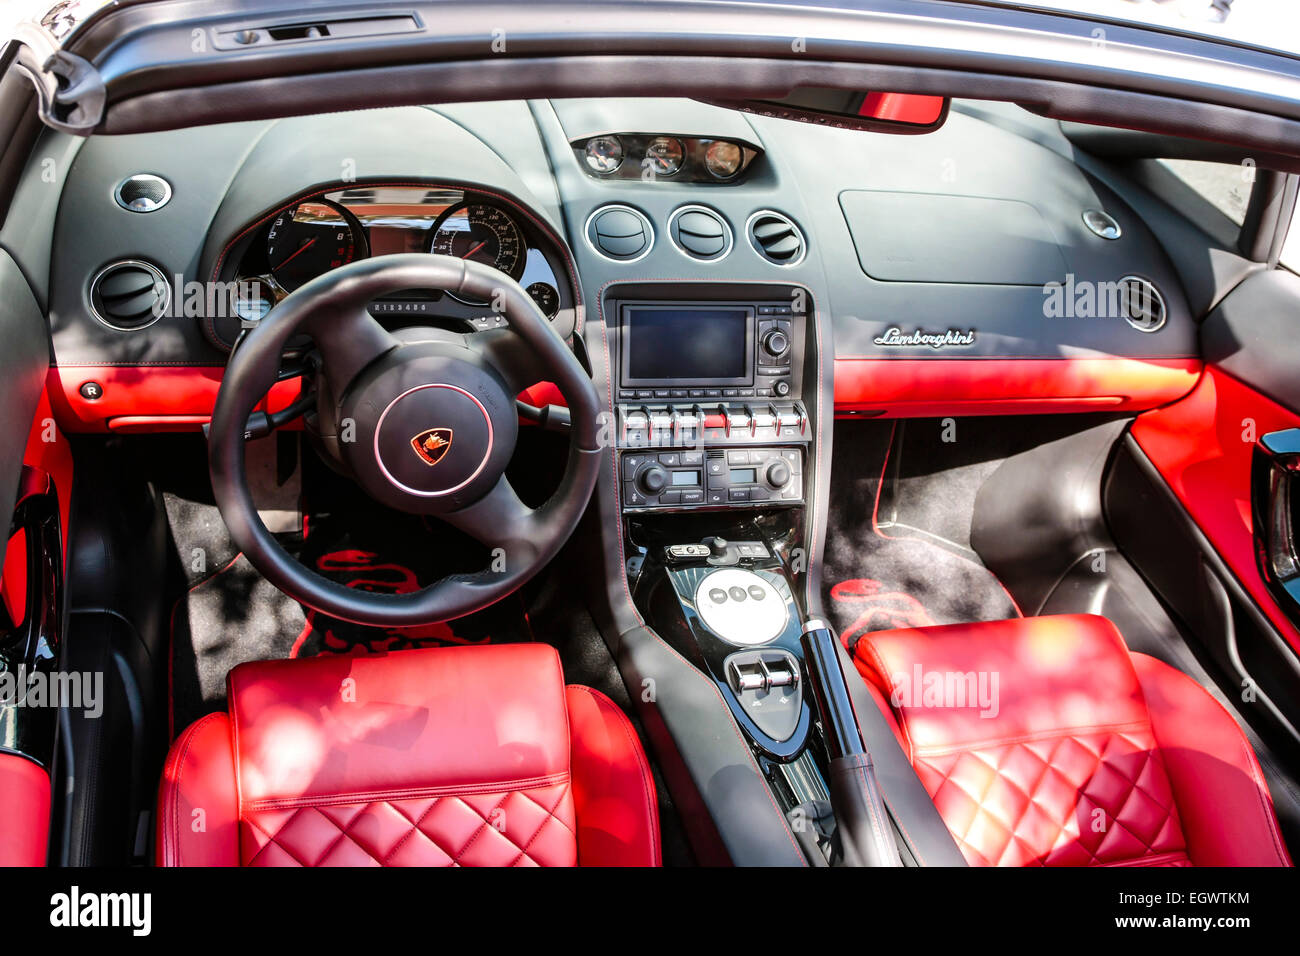 Interior Of A 2012 Lamborghini Huracan In Red And Bacl Leather   Stock Image